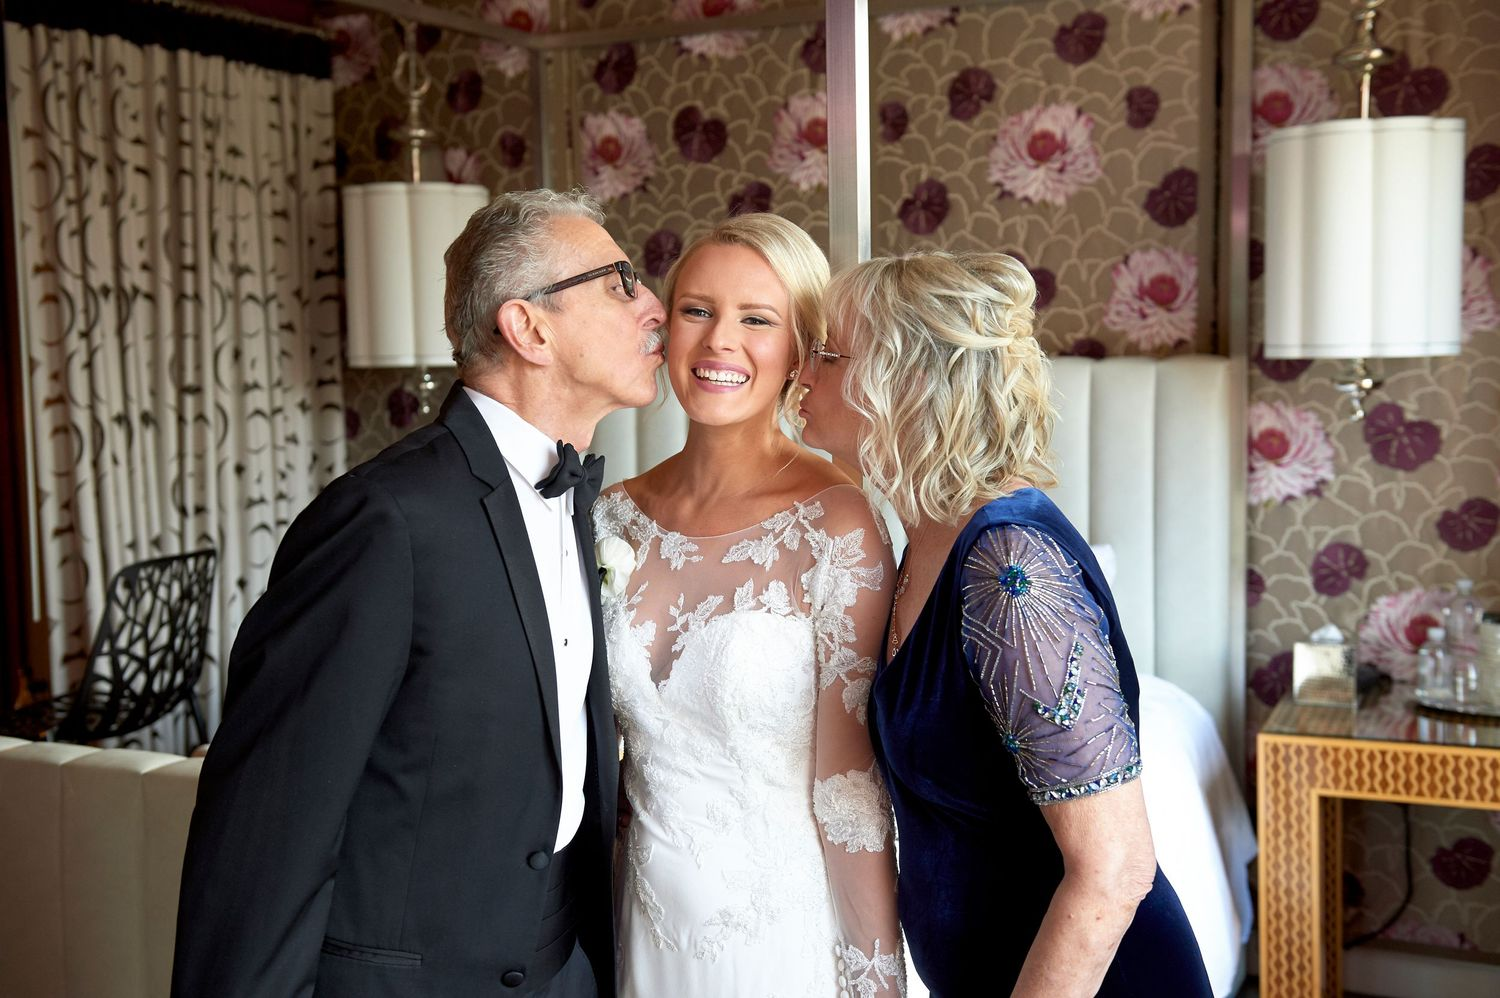 bride's parents kiss her on the cheek wedding photo